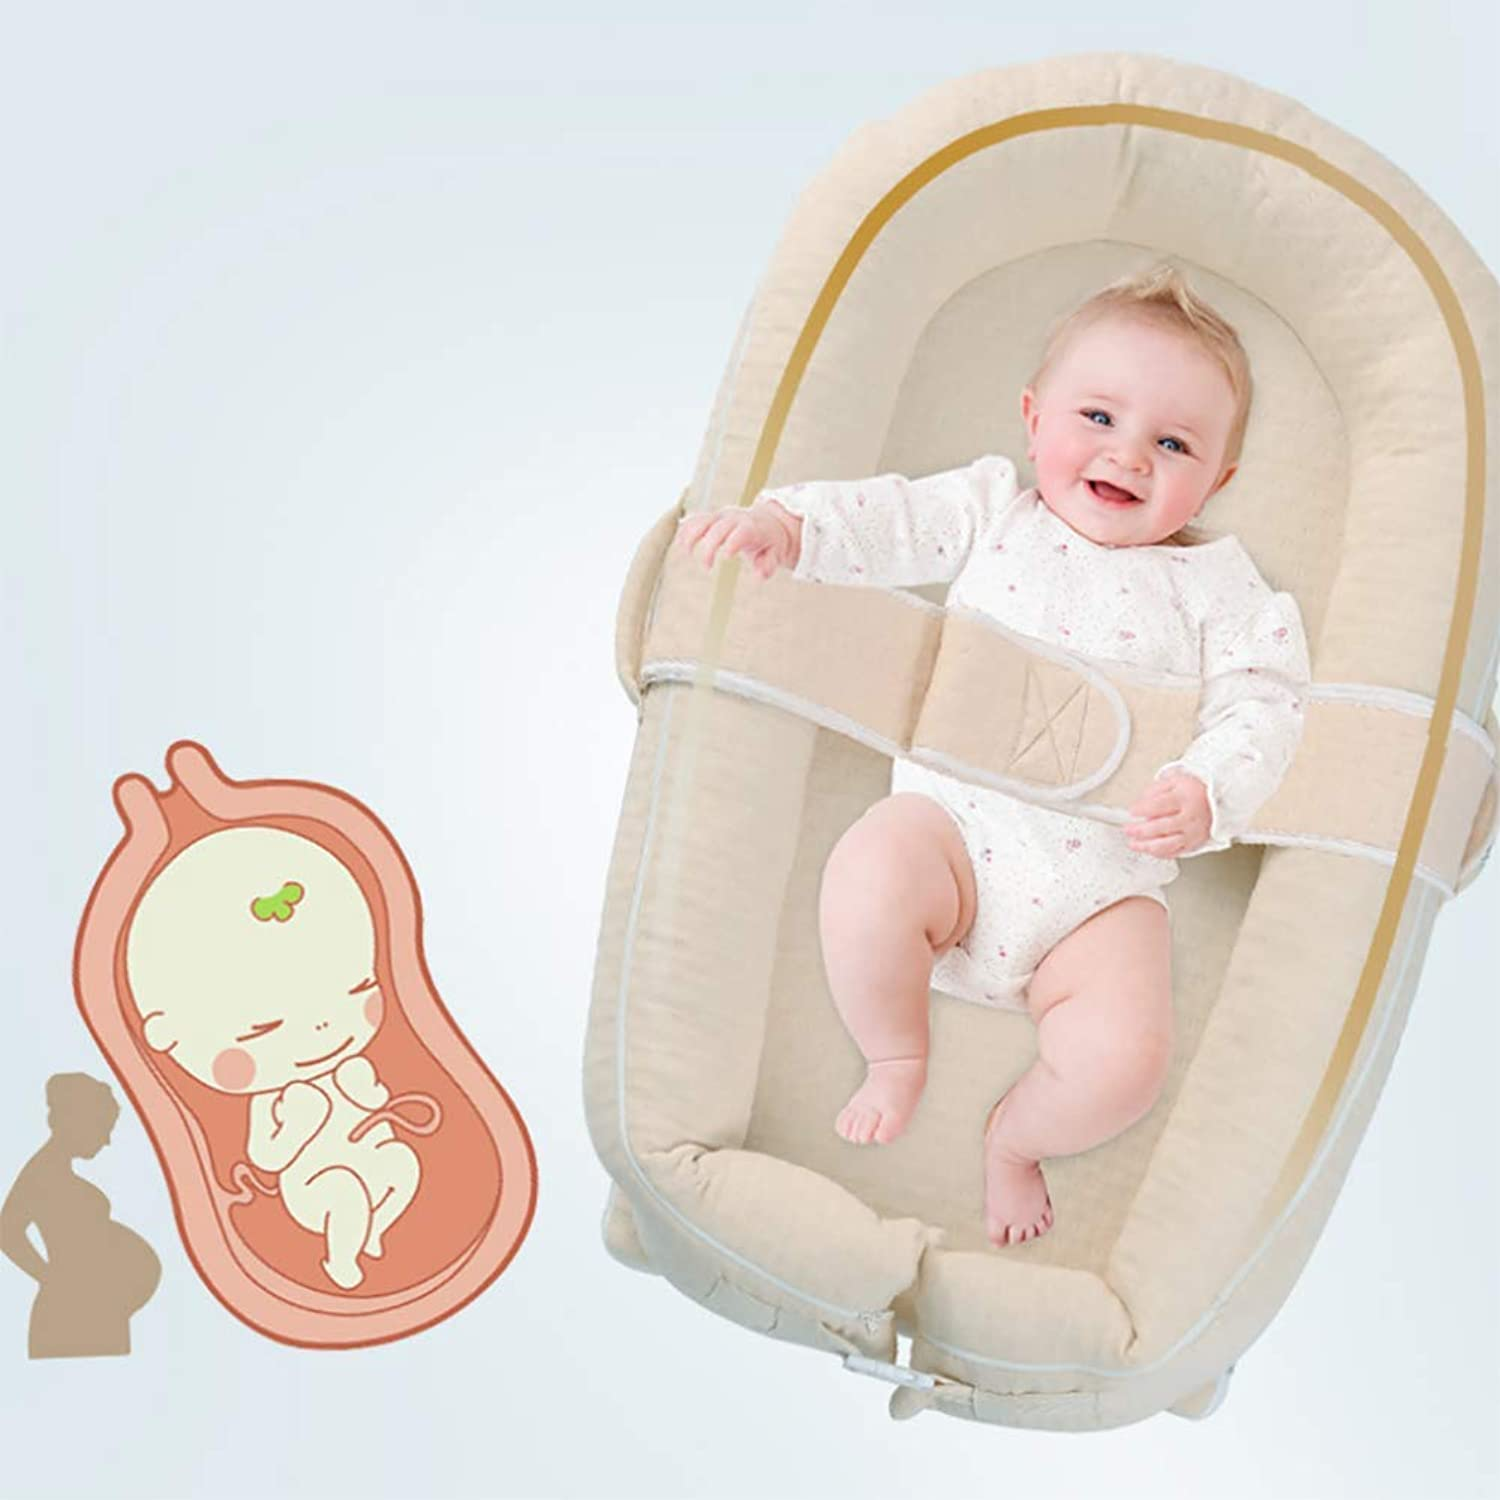 Bionic Baby Bed Natural colord Cotton Baby Bed Sleeping Pad Portable Crib for 0-24 Month Baby